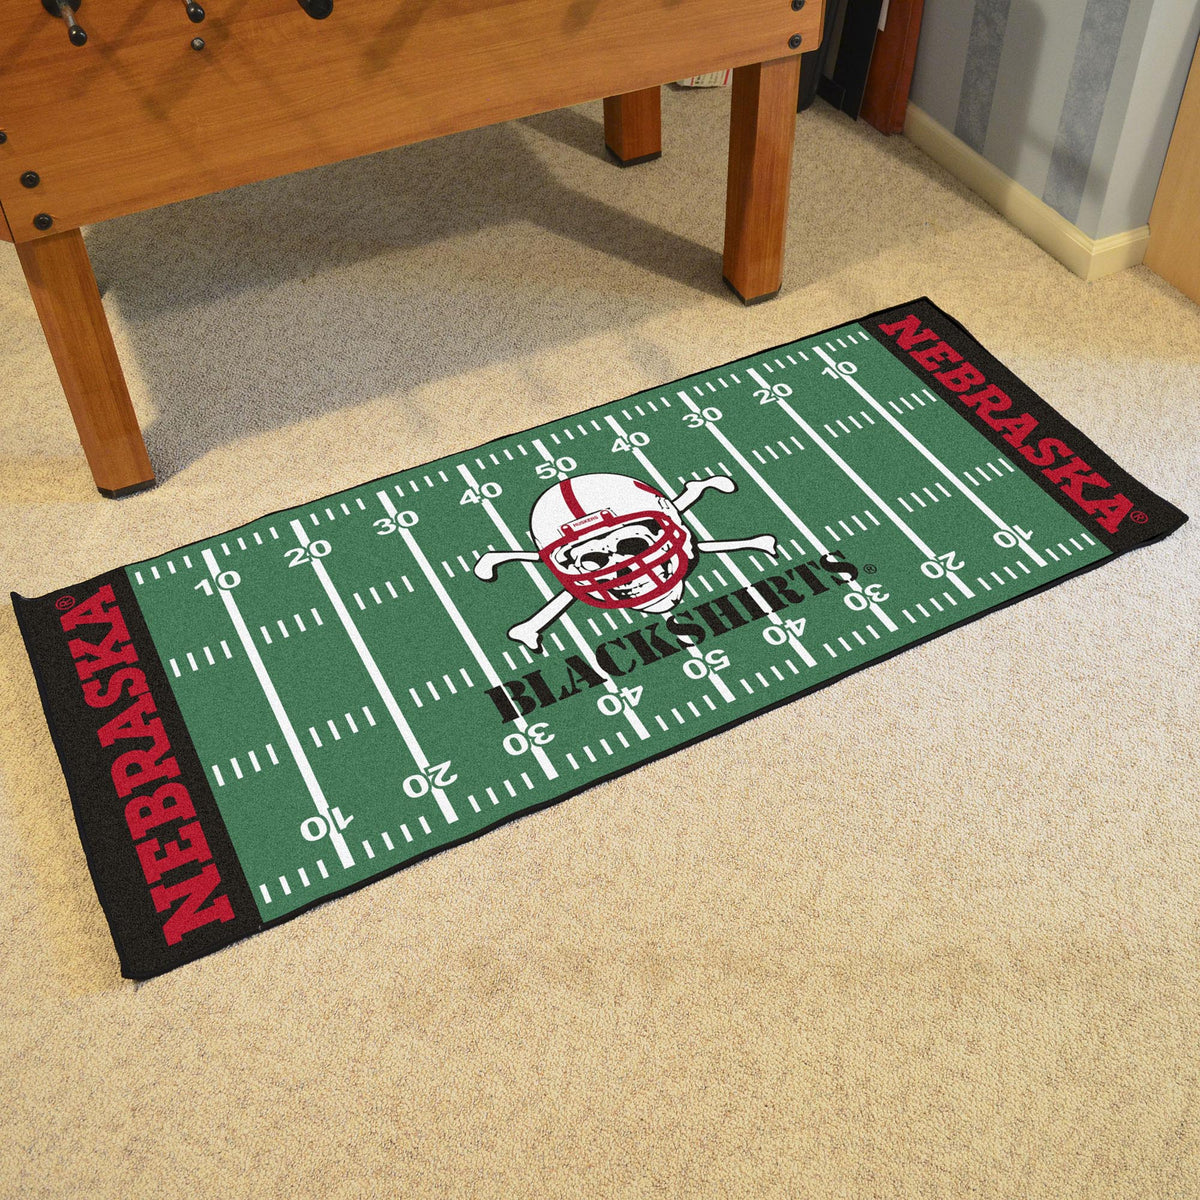 Collegiate - Football Field Runner Collegiate Mats, Rectangular Mats, Football Field Runner, Collegiate, Home Fan Mats Nebraska 2